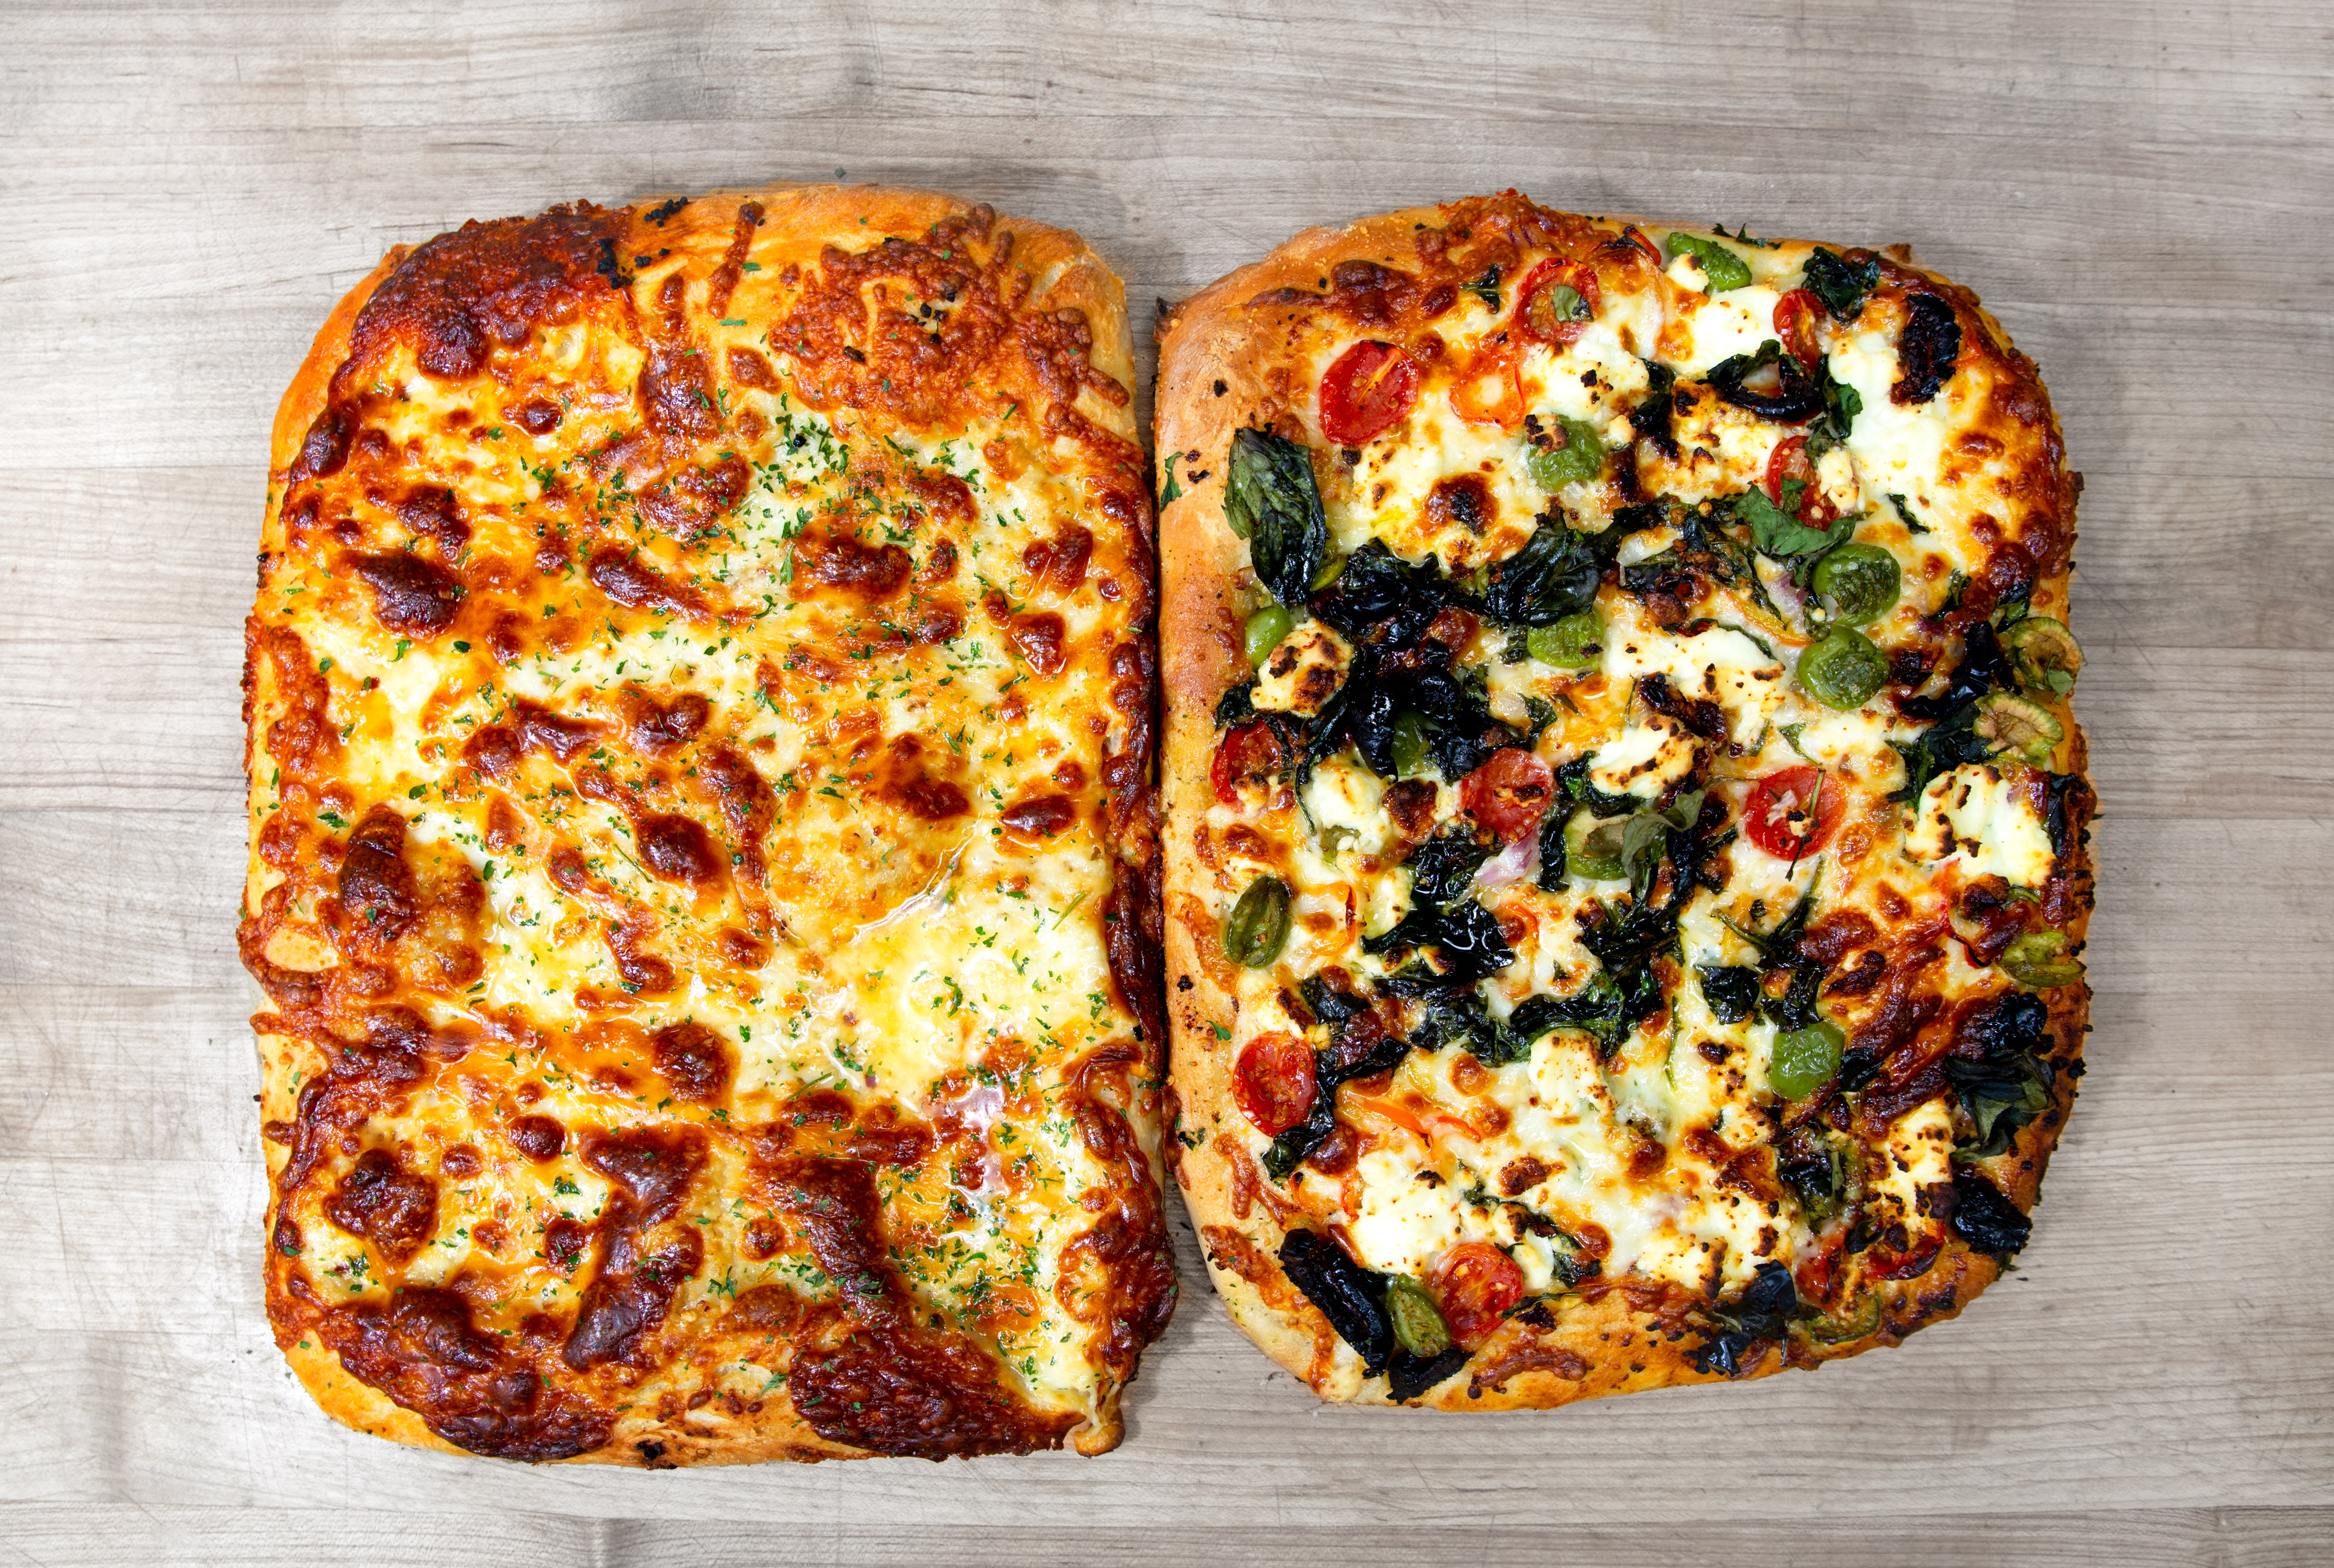 Two square pizzas